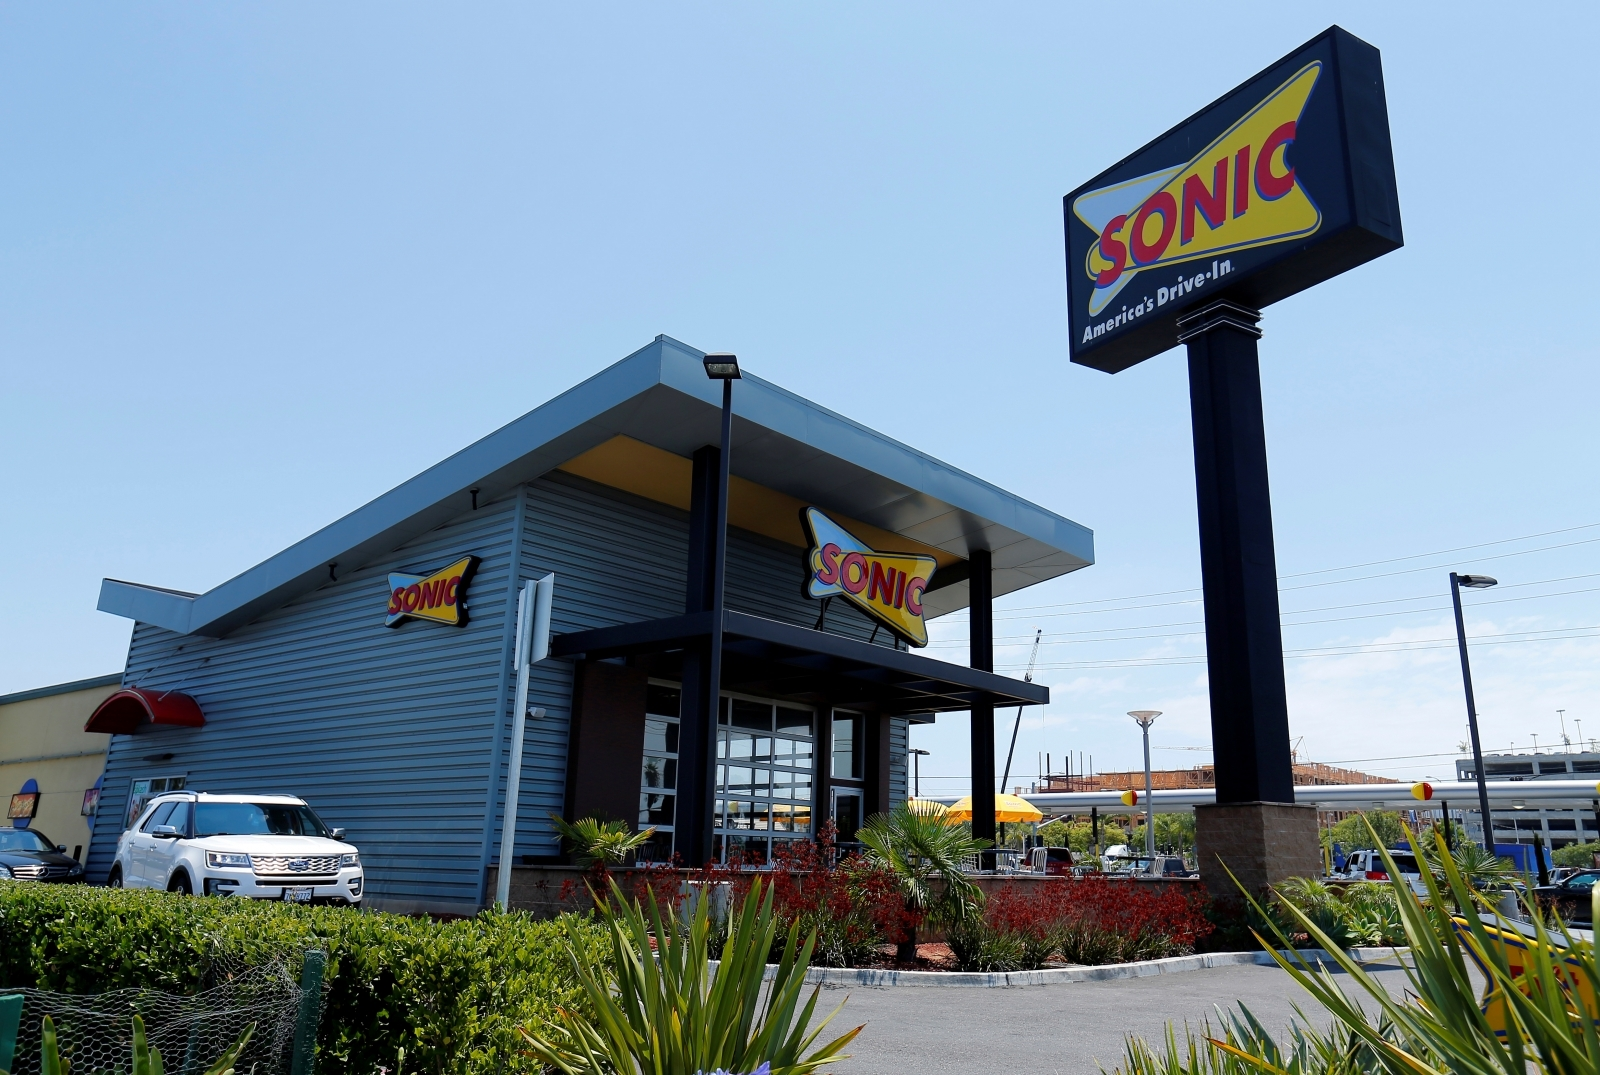 Food runner Sonic notified of unusual credit card activity